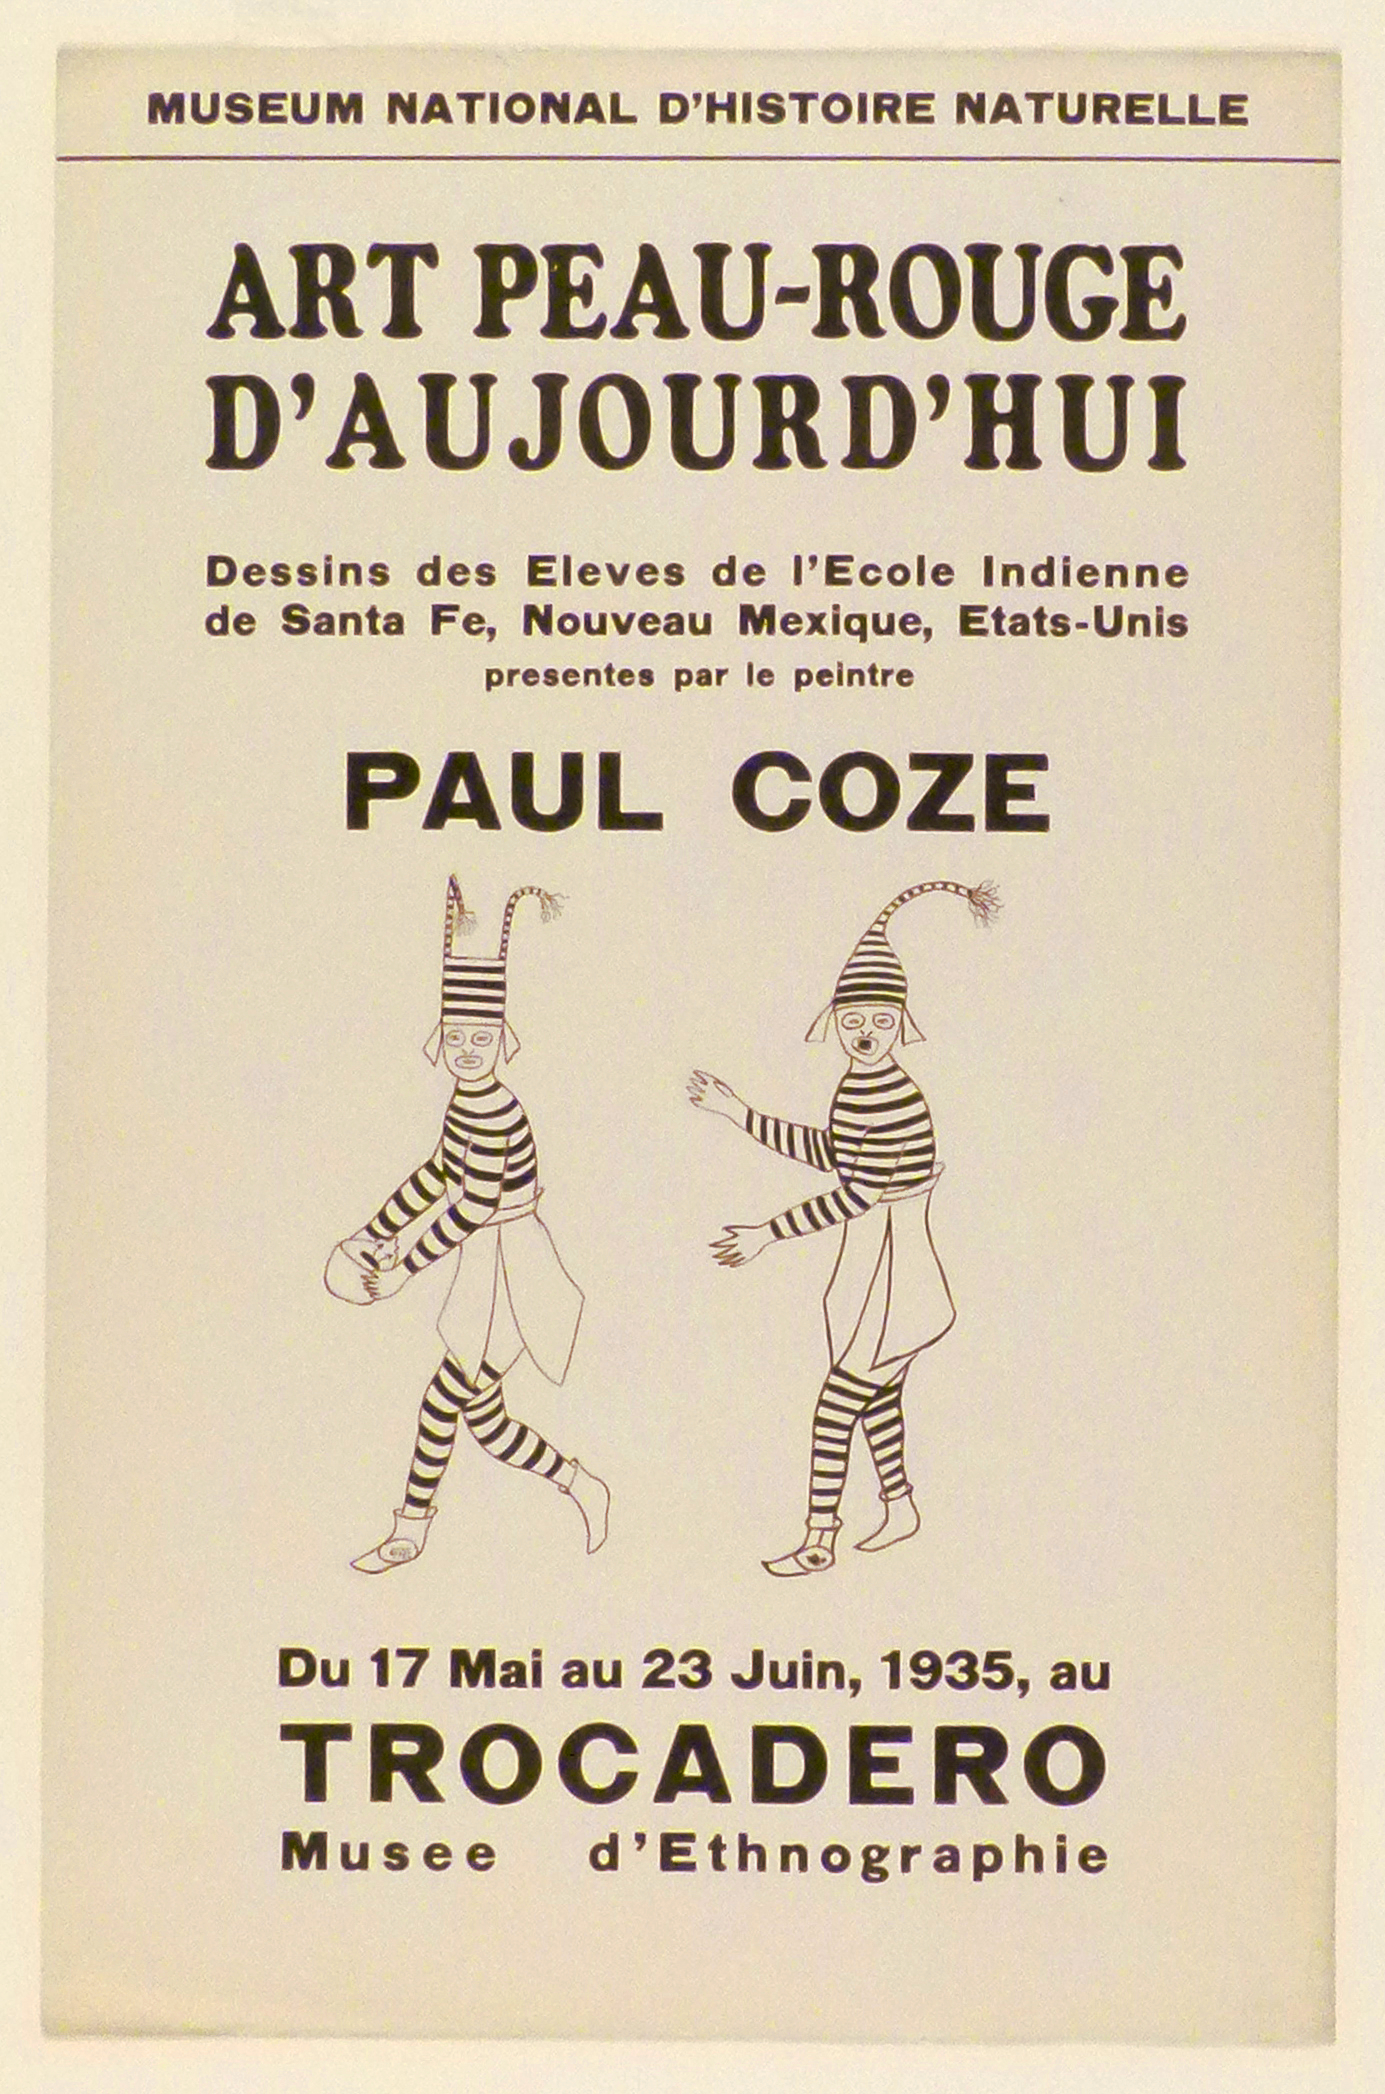 Art Exhibition Poster with painting of two figures in black and white striped clothing and hats with tassels.